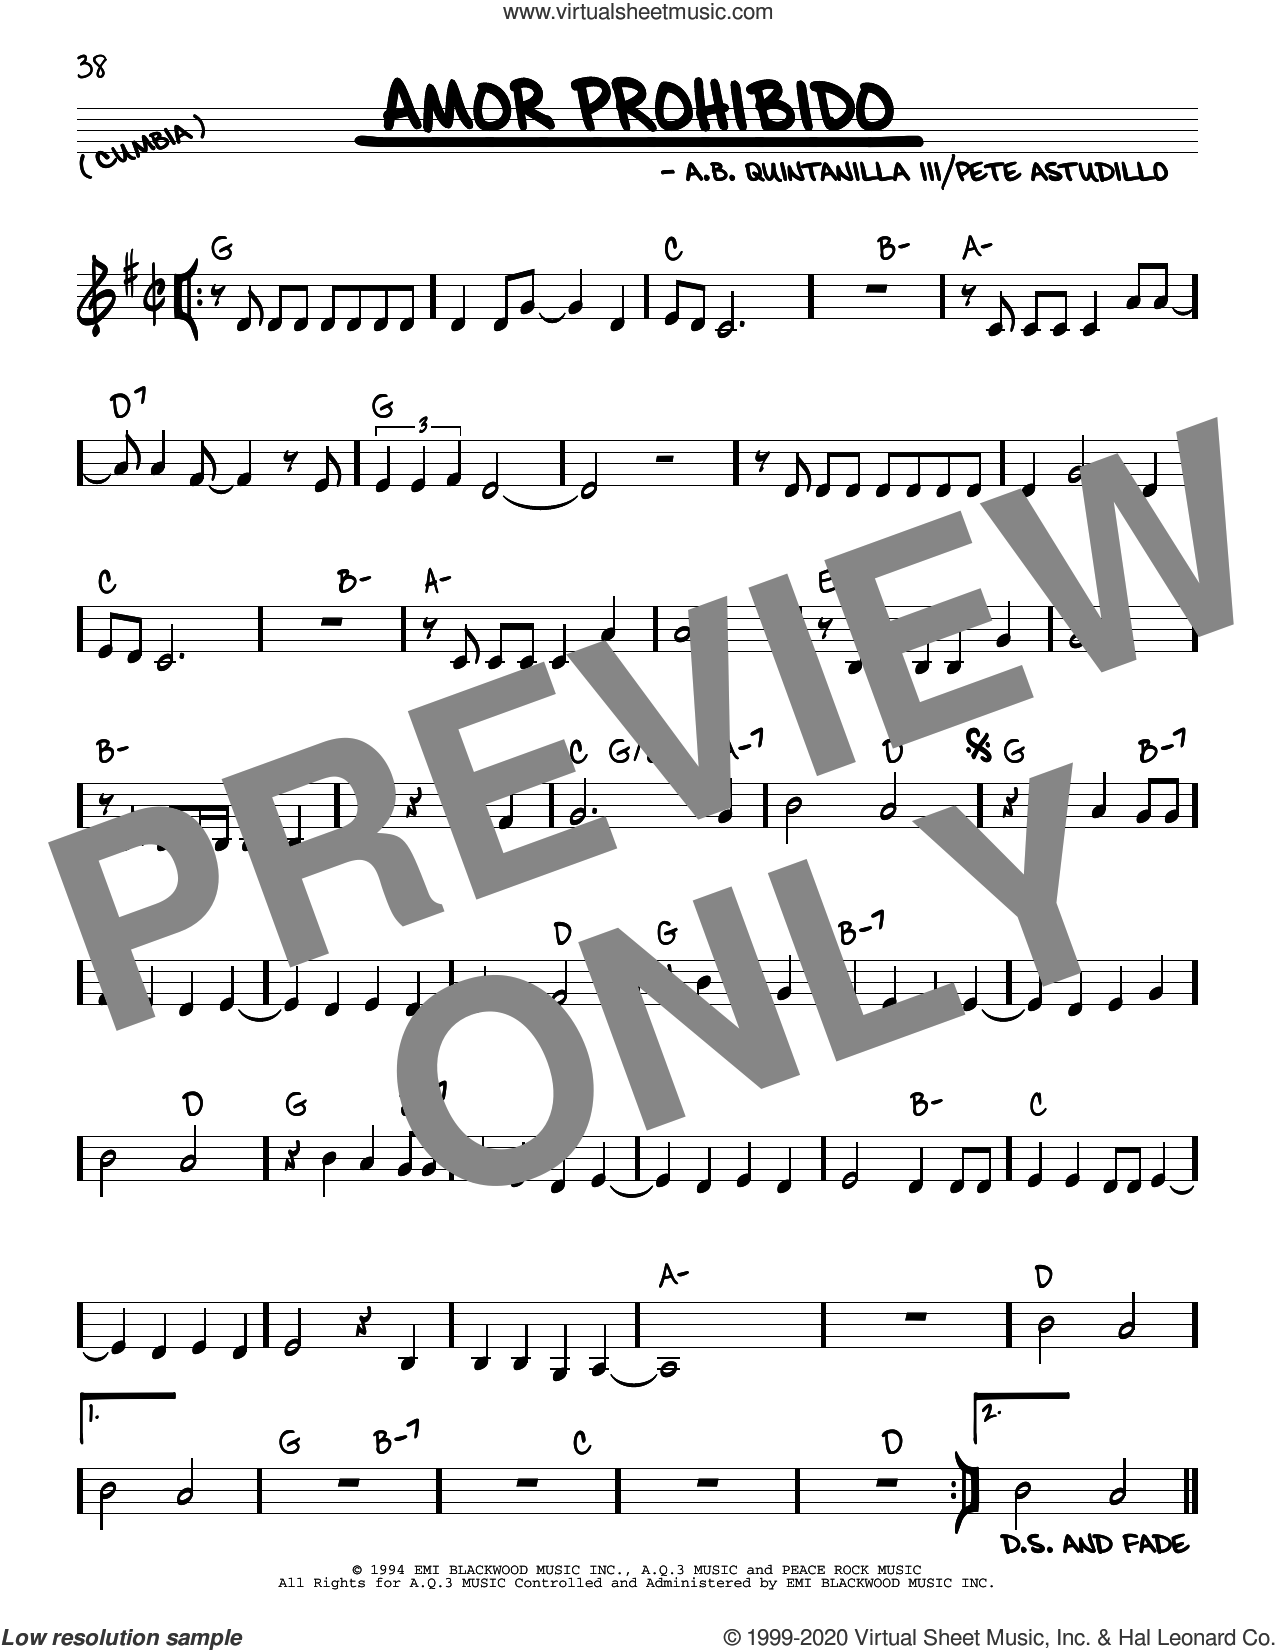 Amor Prohibido sheet music for voice and other instruments (real book) by Selena, Abe Quintanilla III and Pete Astudillo, intermediate skill level